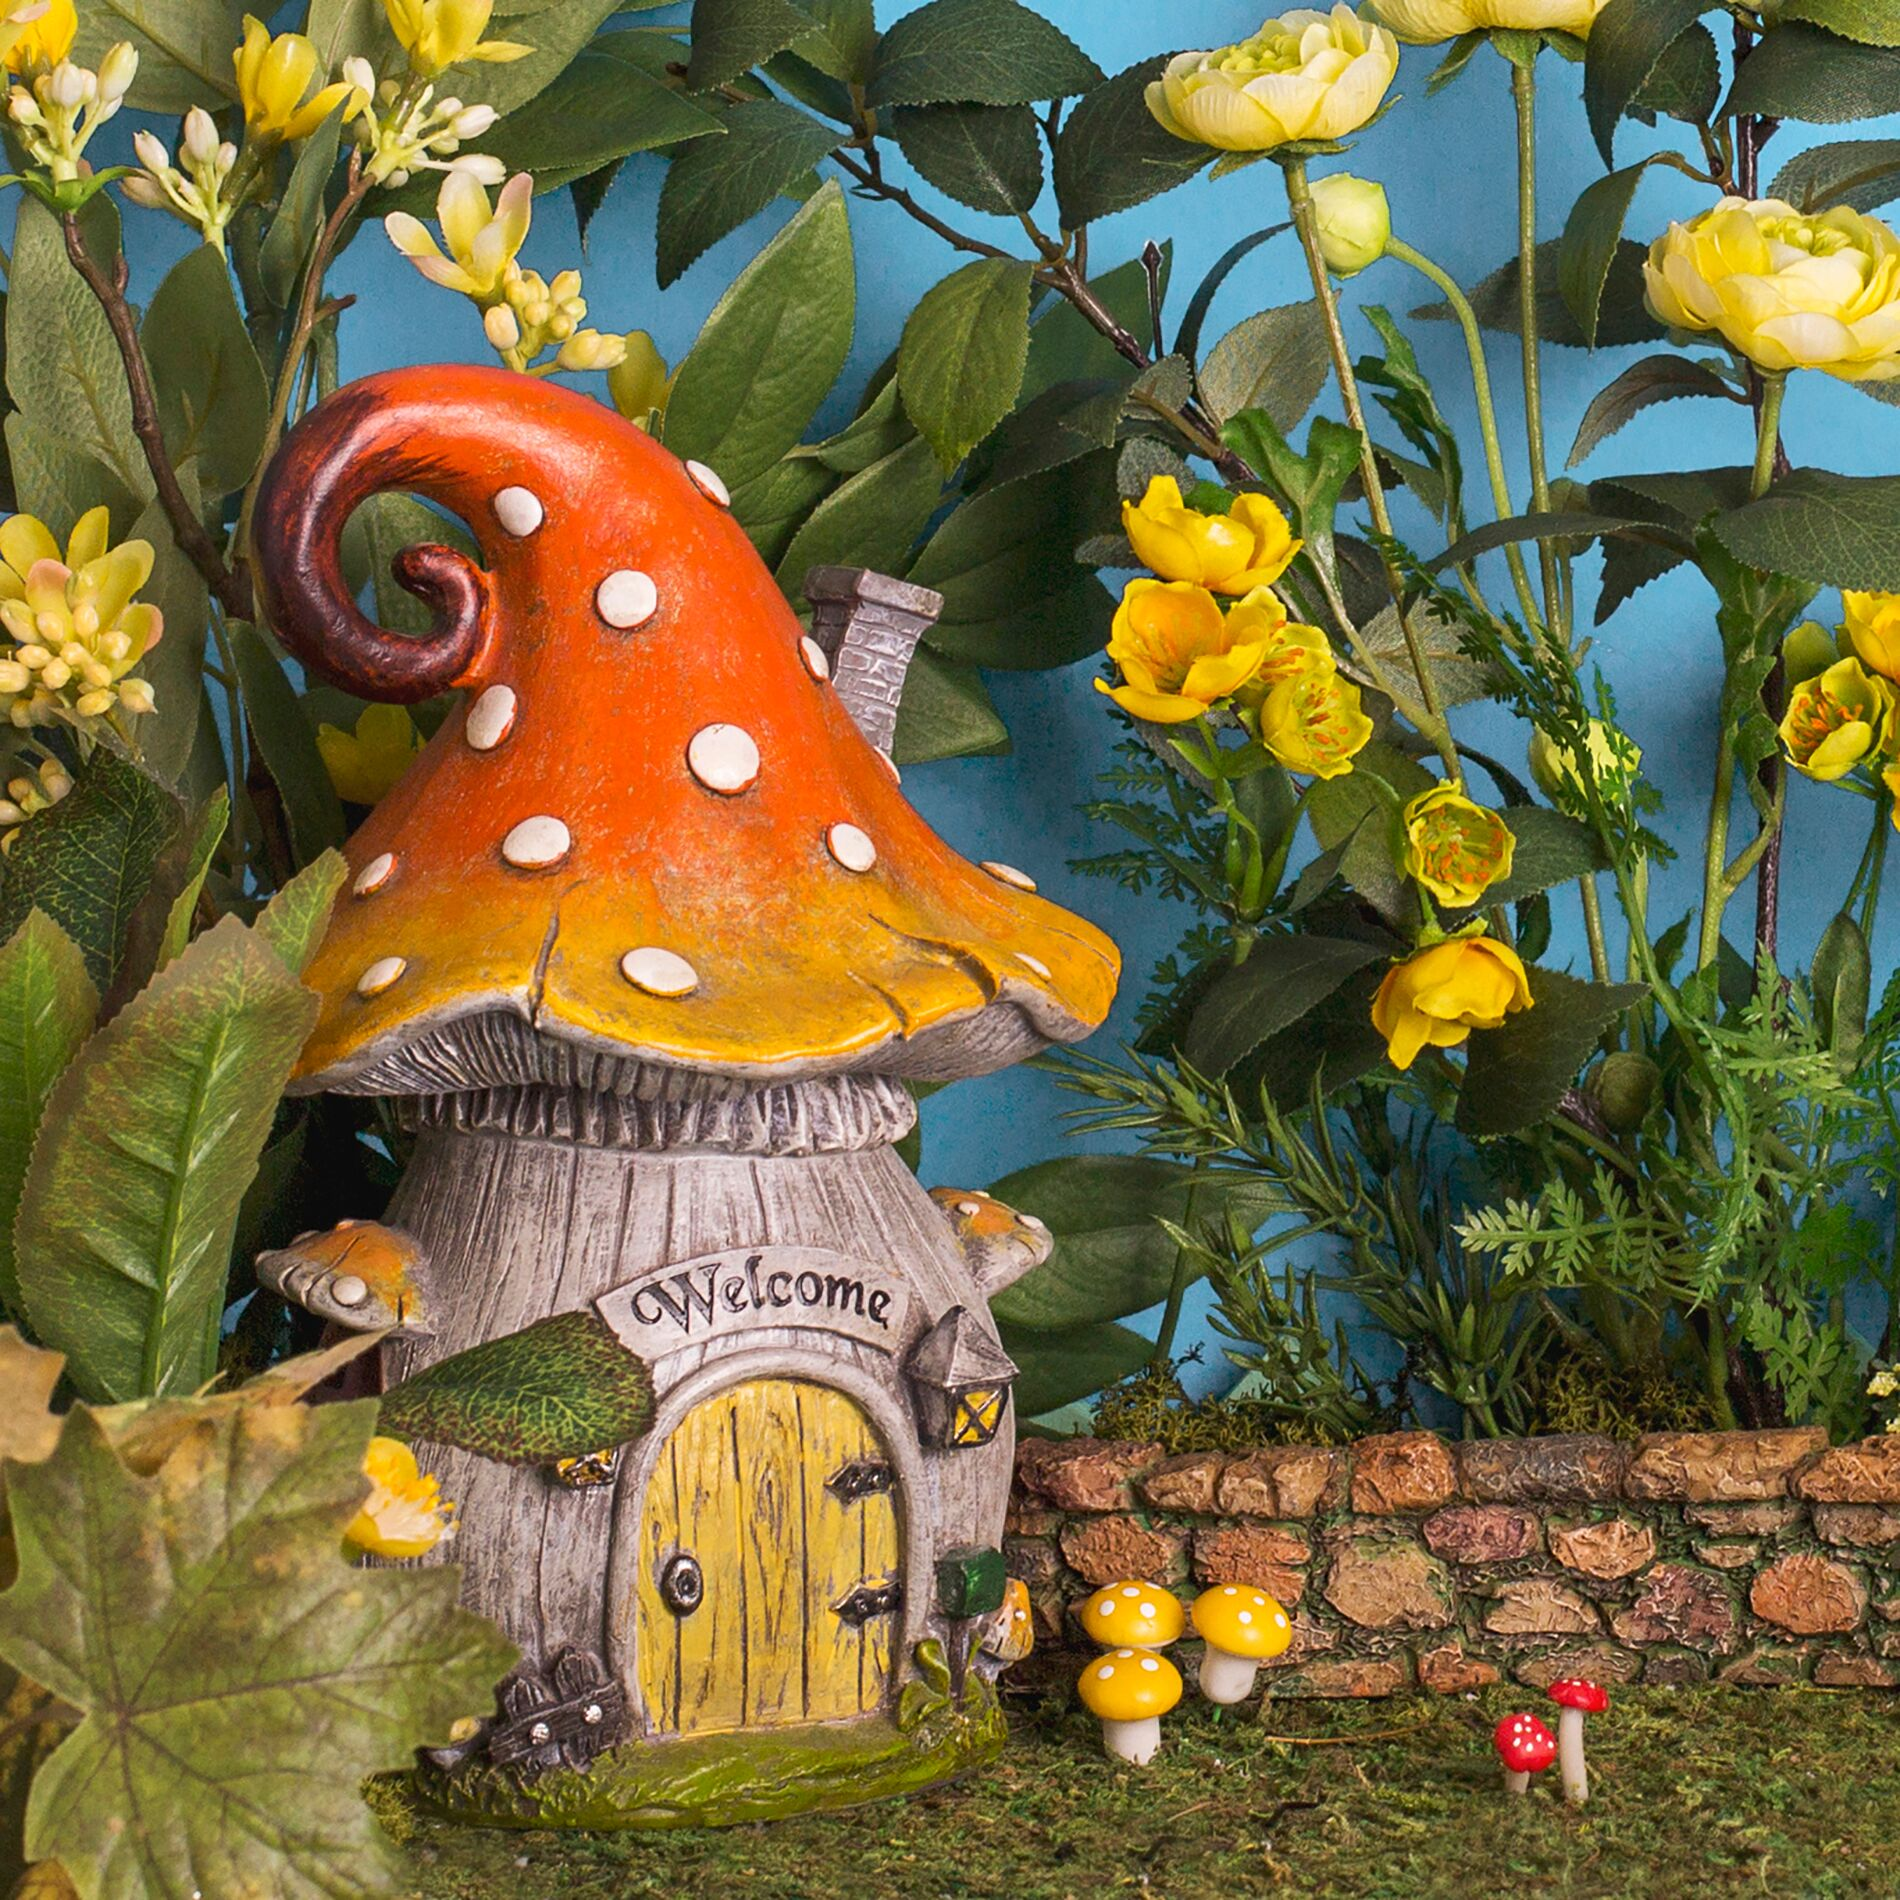 Away with the Fairies sell miniature garden fairy products